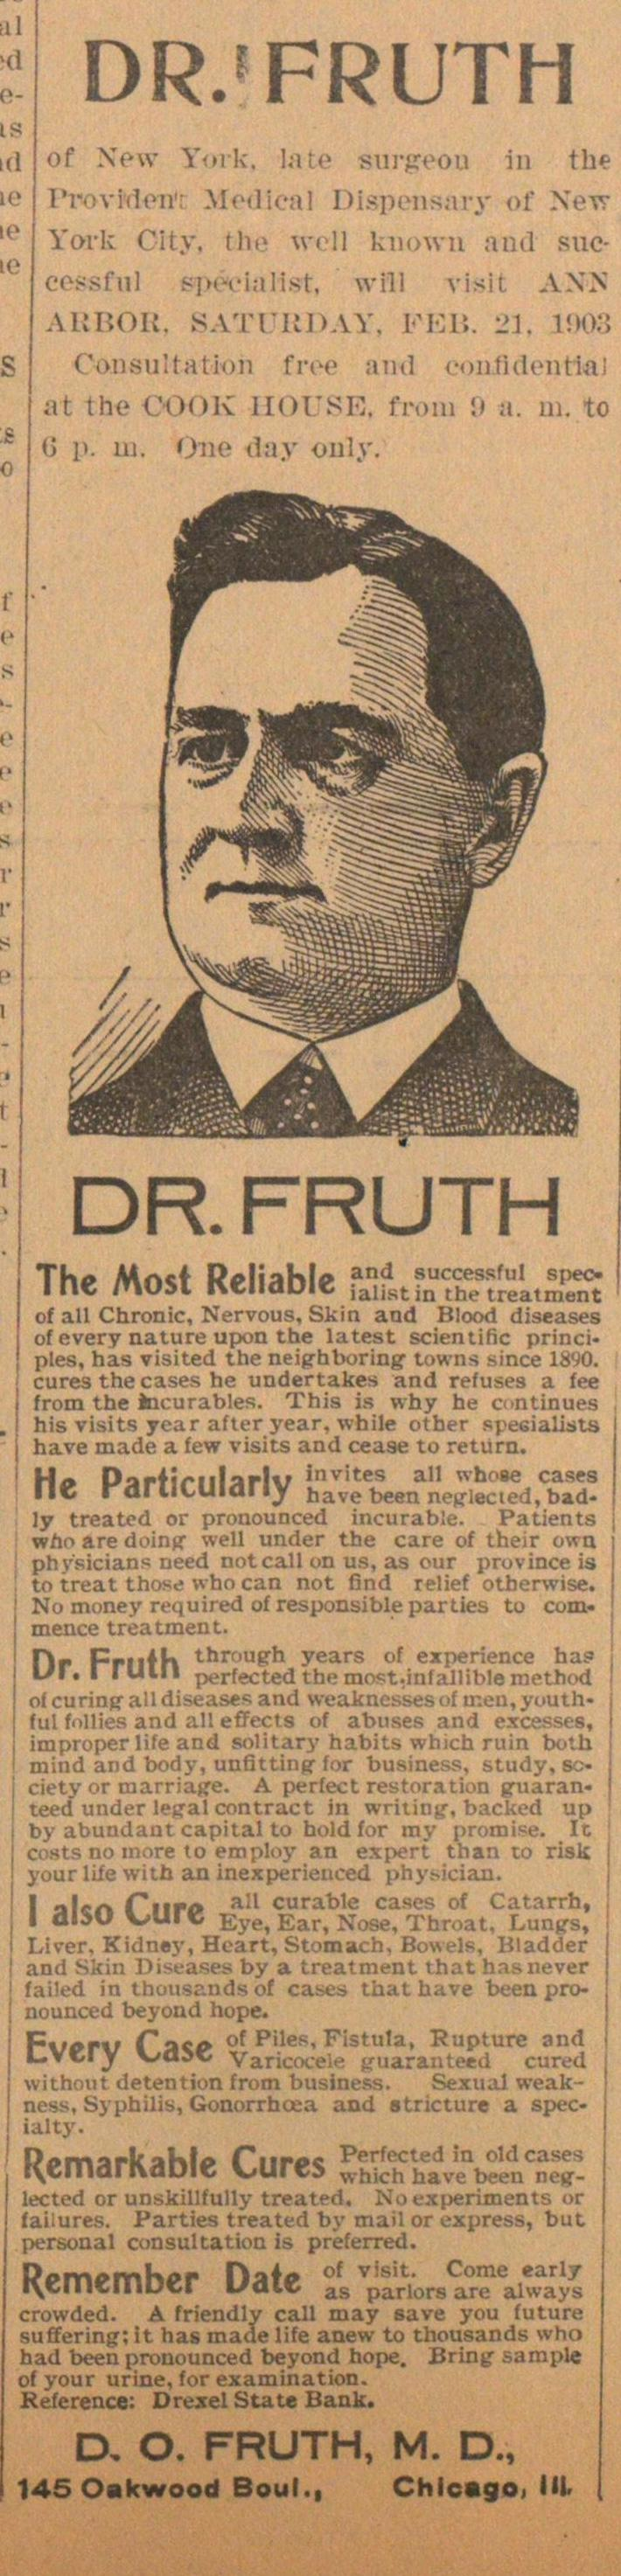 Dr. Fruth image